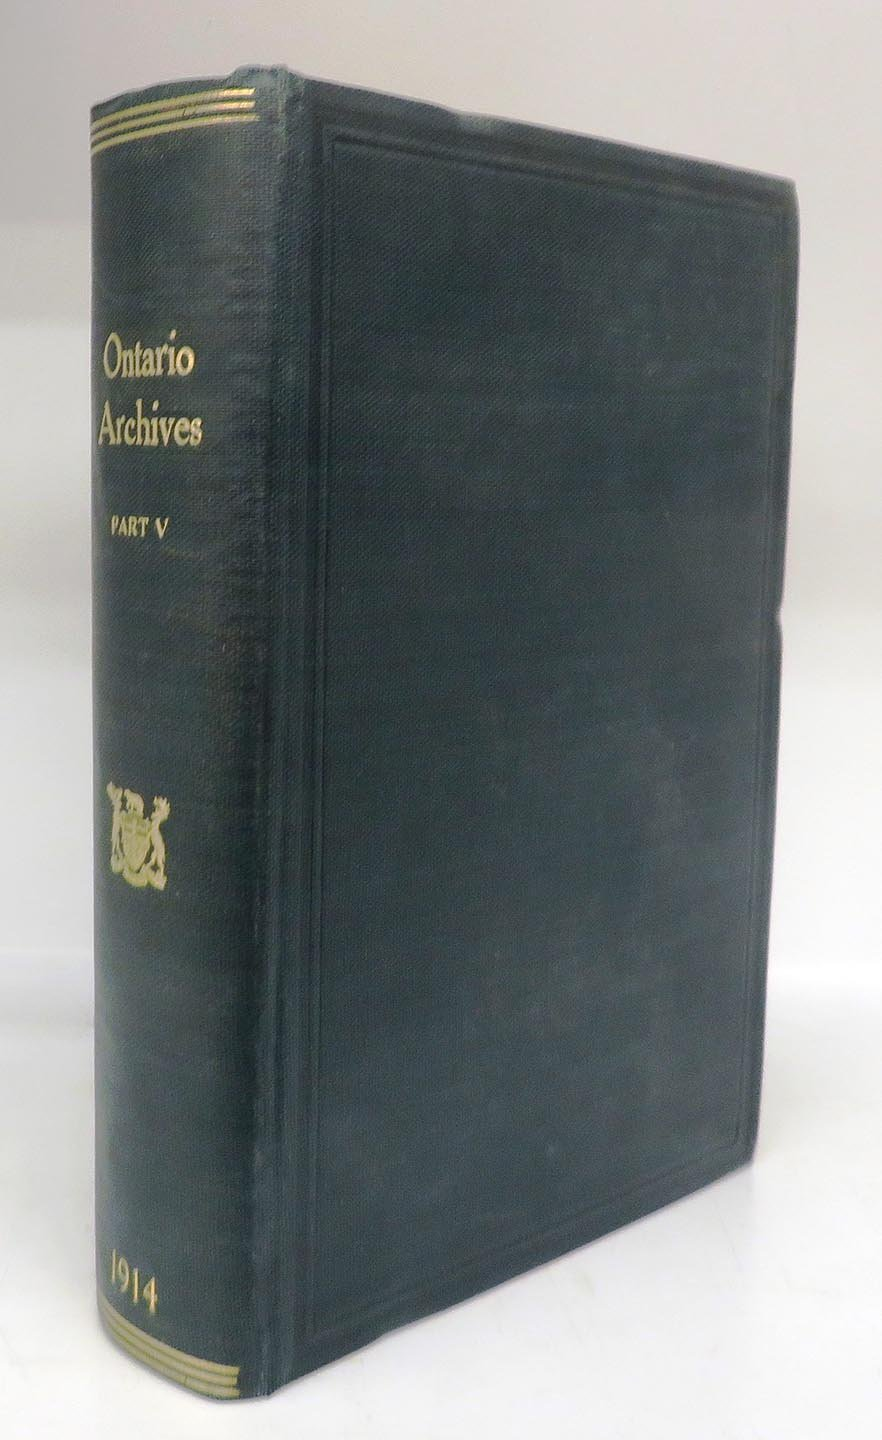 Eleventh Report of the Bureau of Archives for the Province of Ontario, 1914